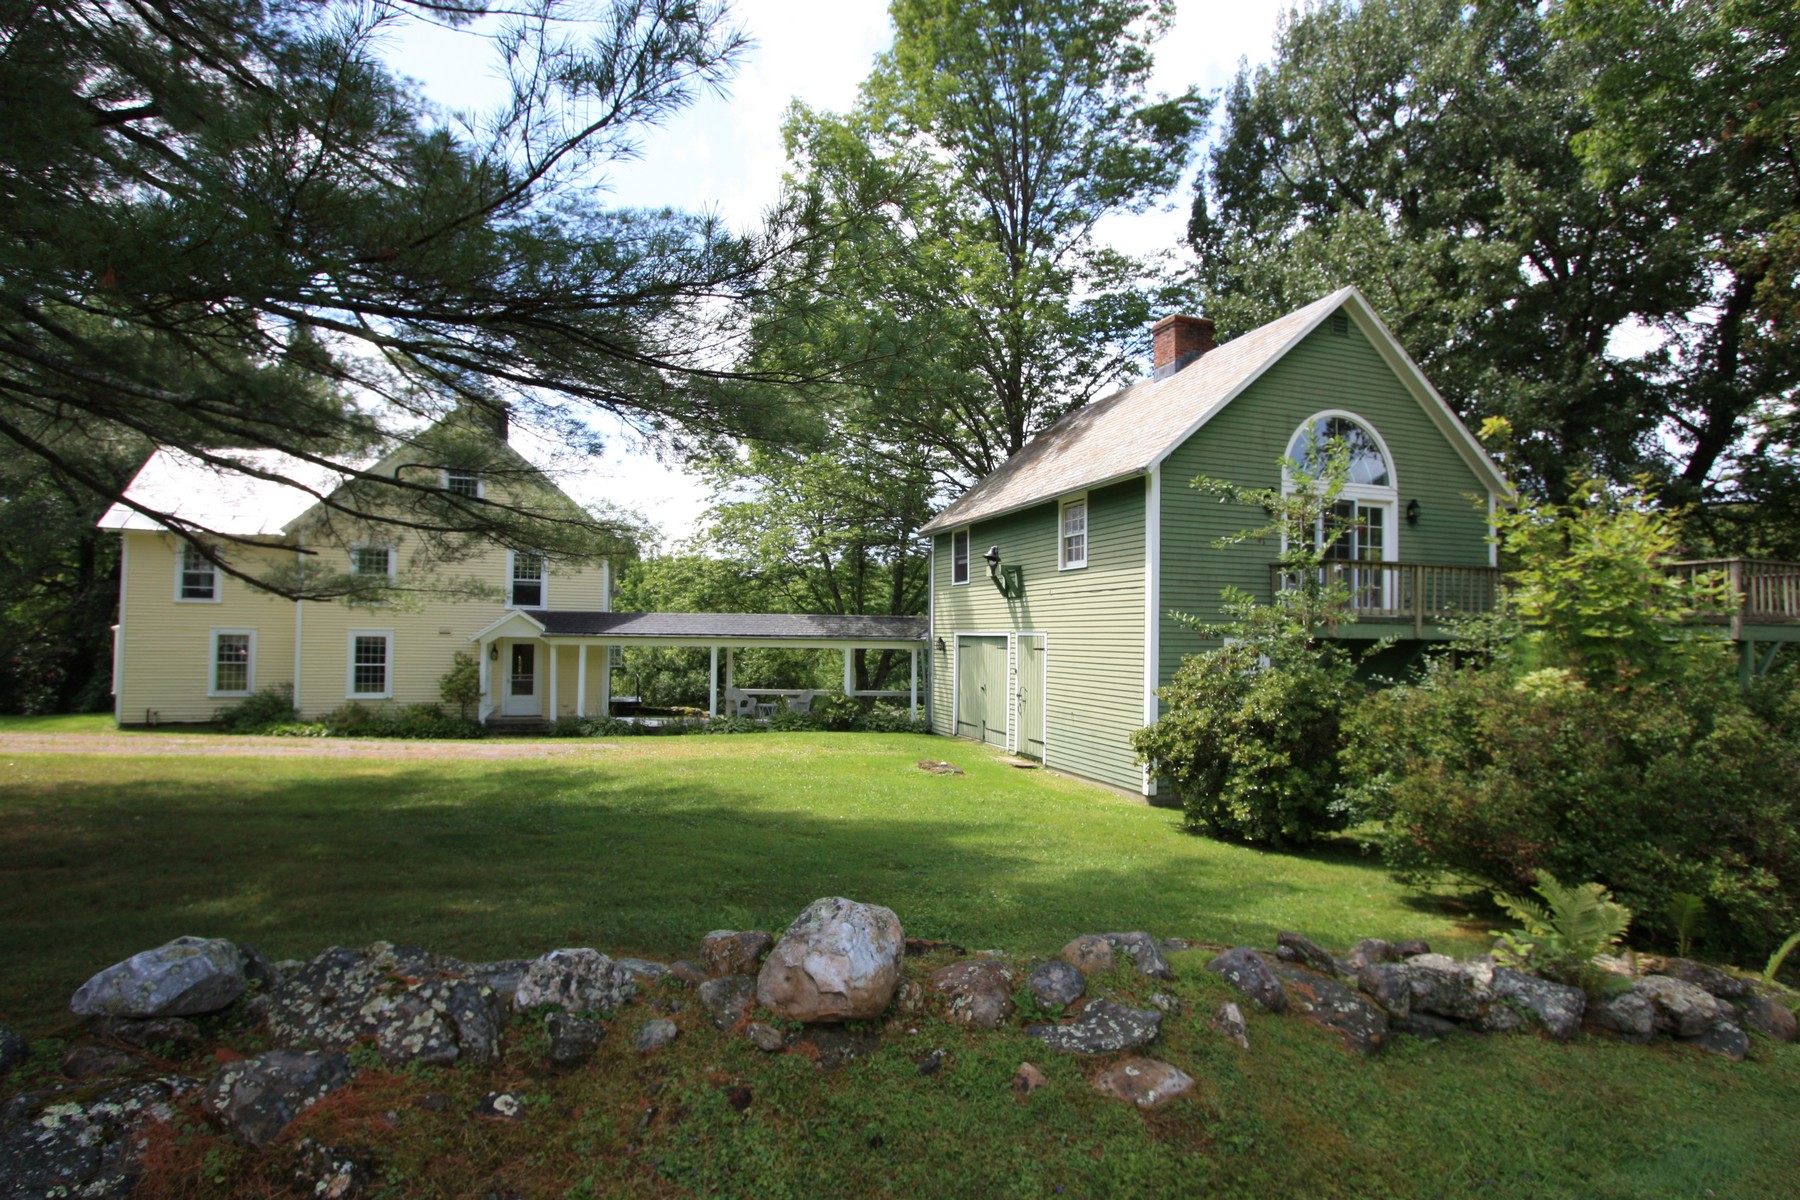 Single Family Homes for Sale at Dorset Hollow Colonial 1743 Lower Hollow Road Dorset, Vermont 05251 United States